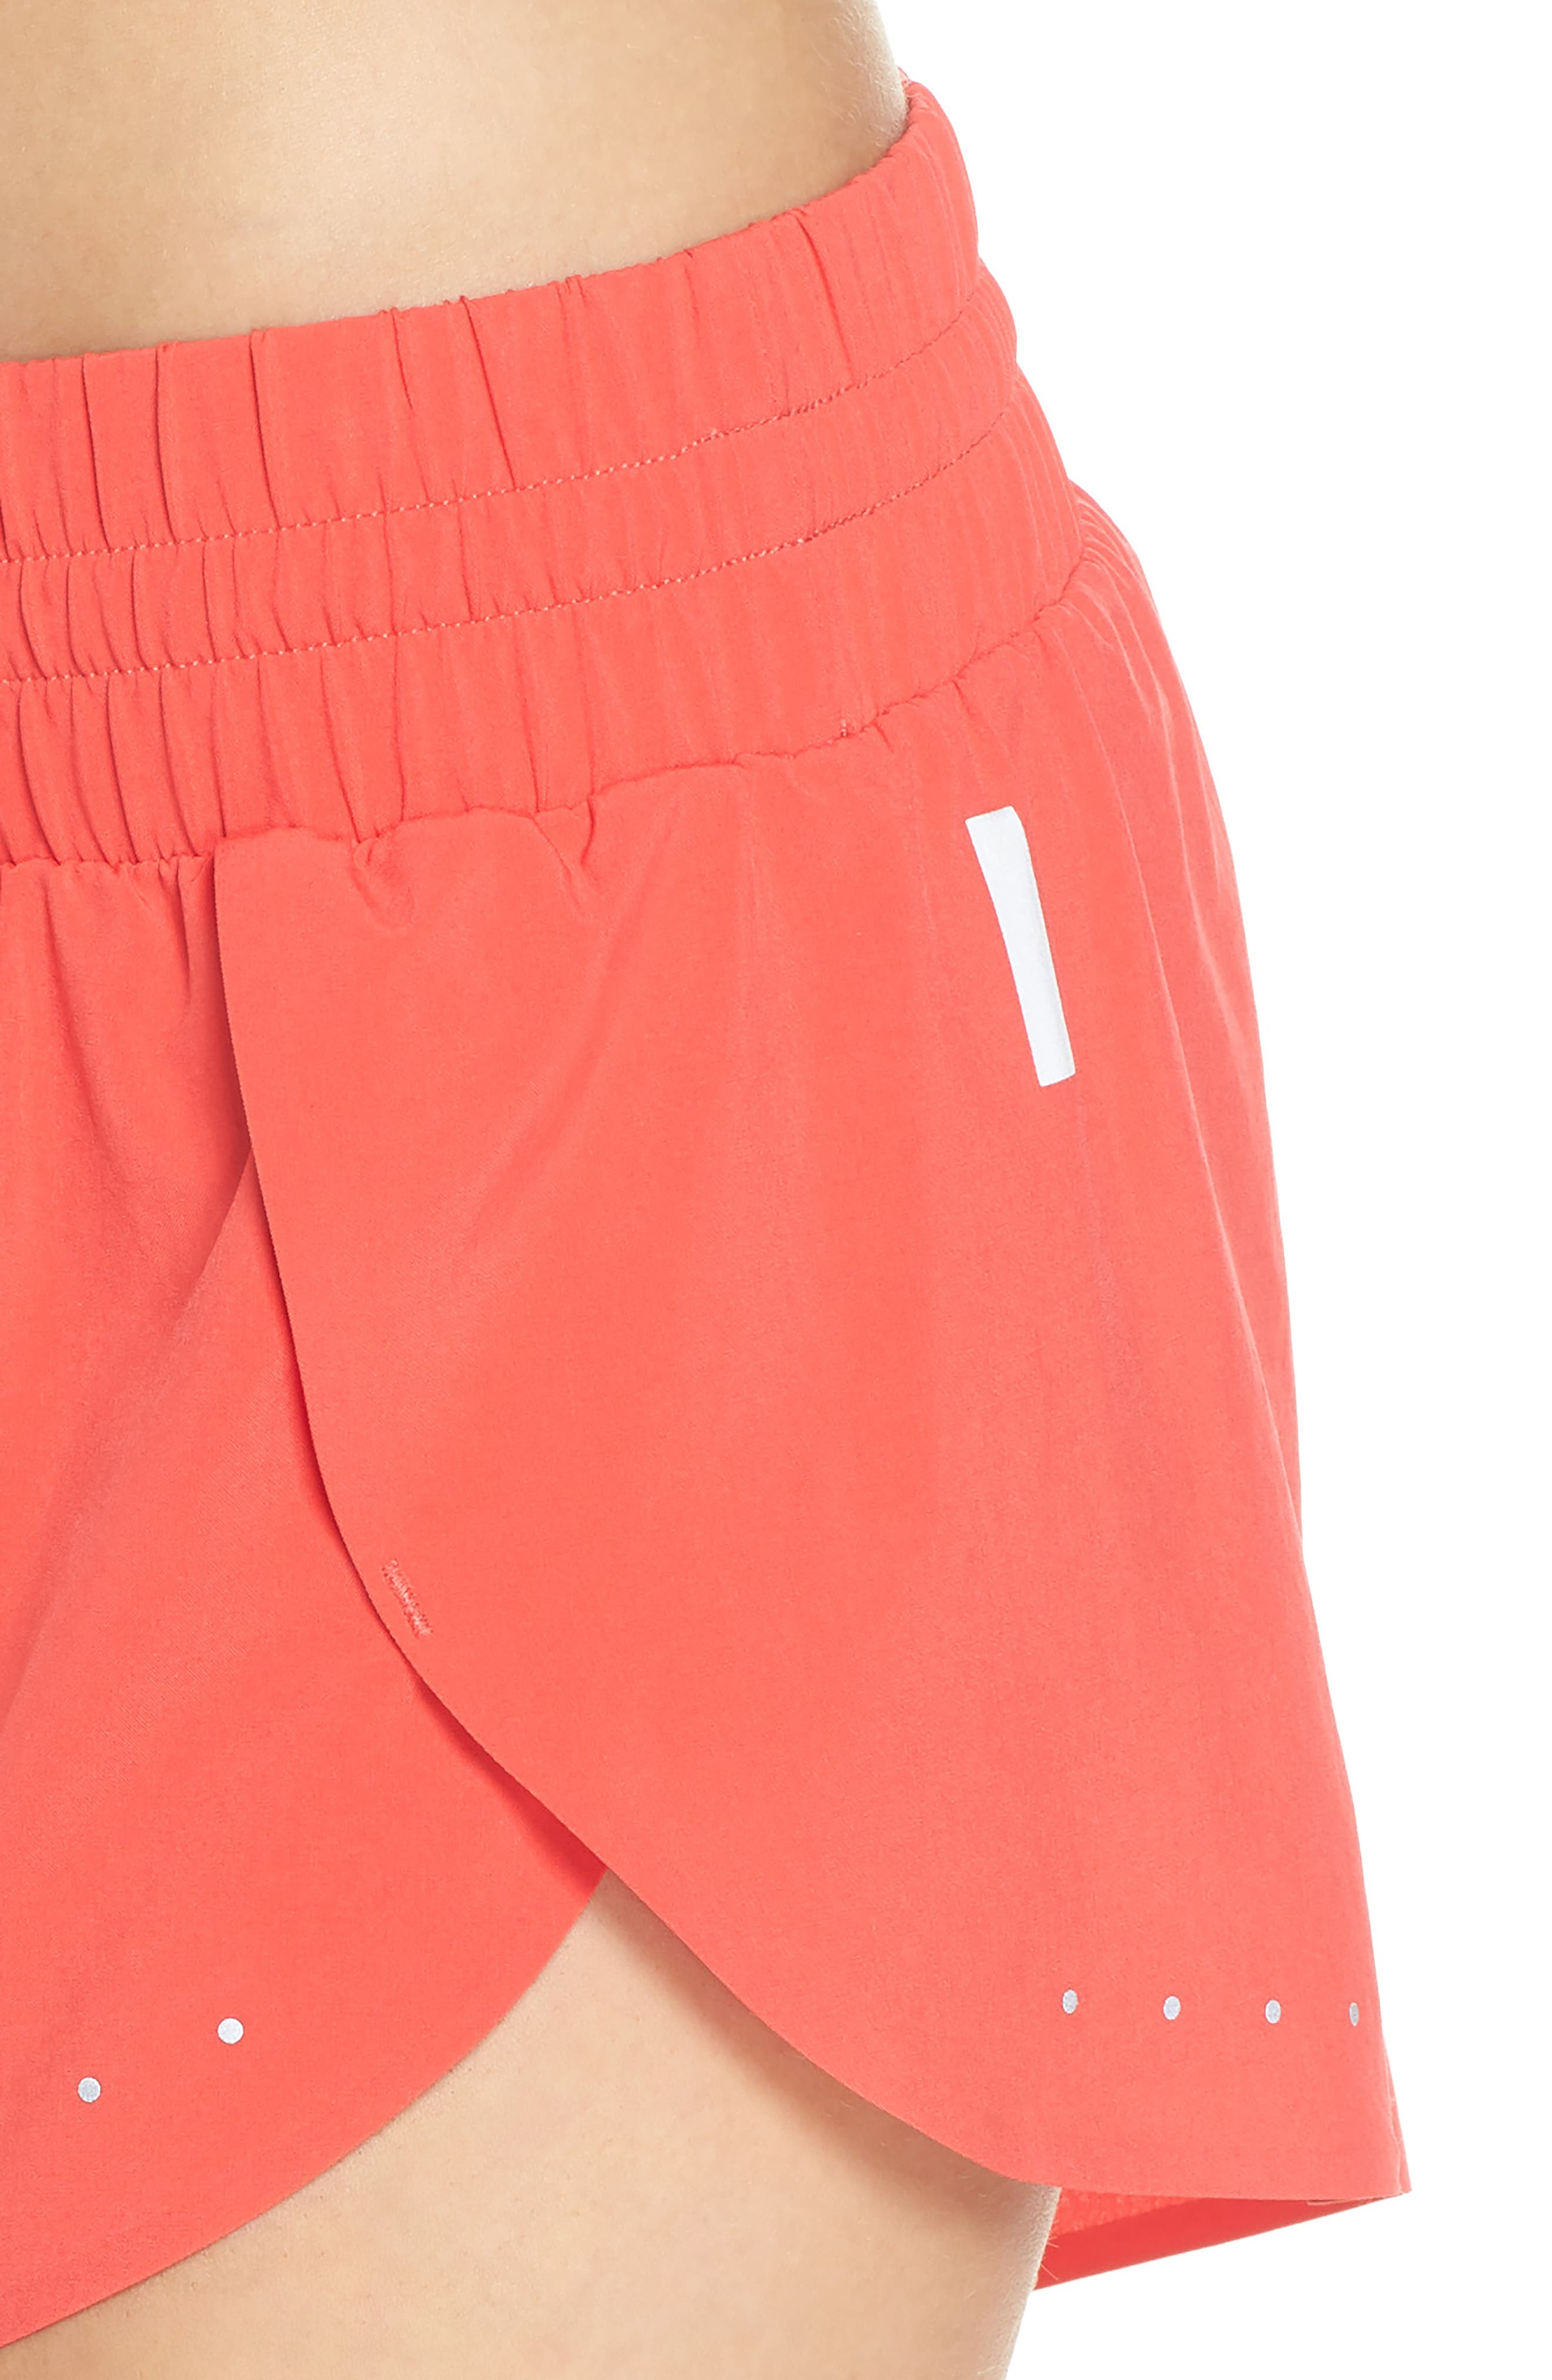 Run Play Shorts,                             Alternate thumbnail 4, color,                             Red Hibiscus